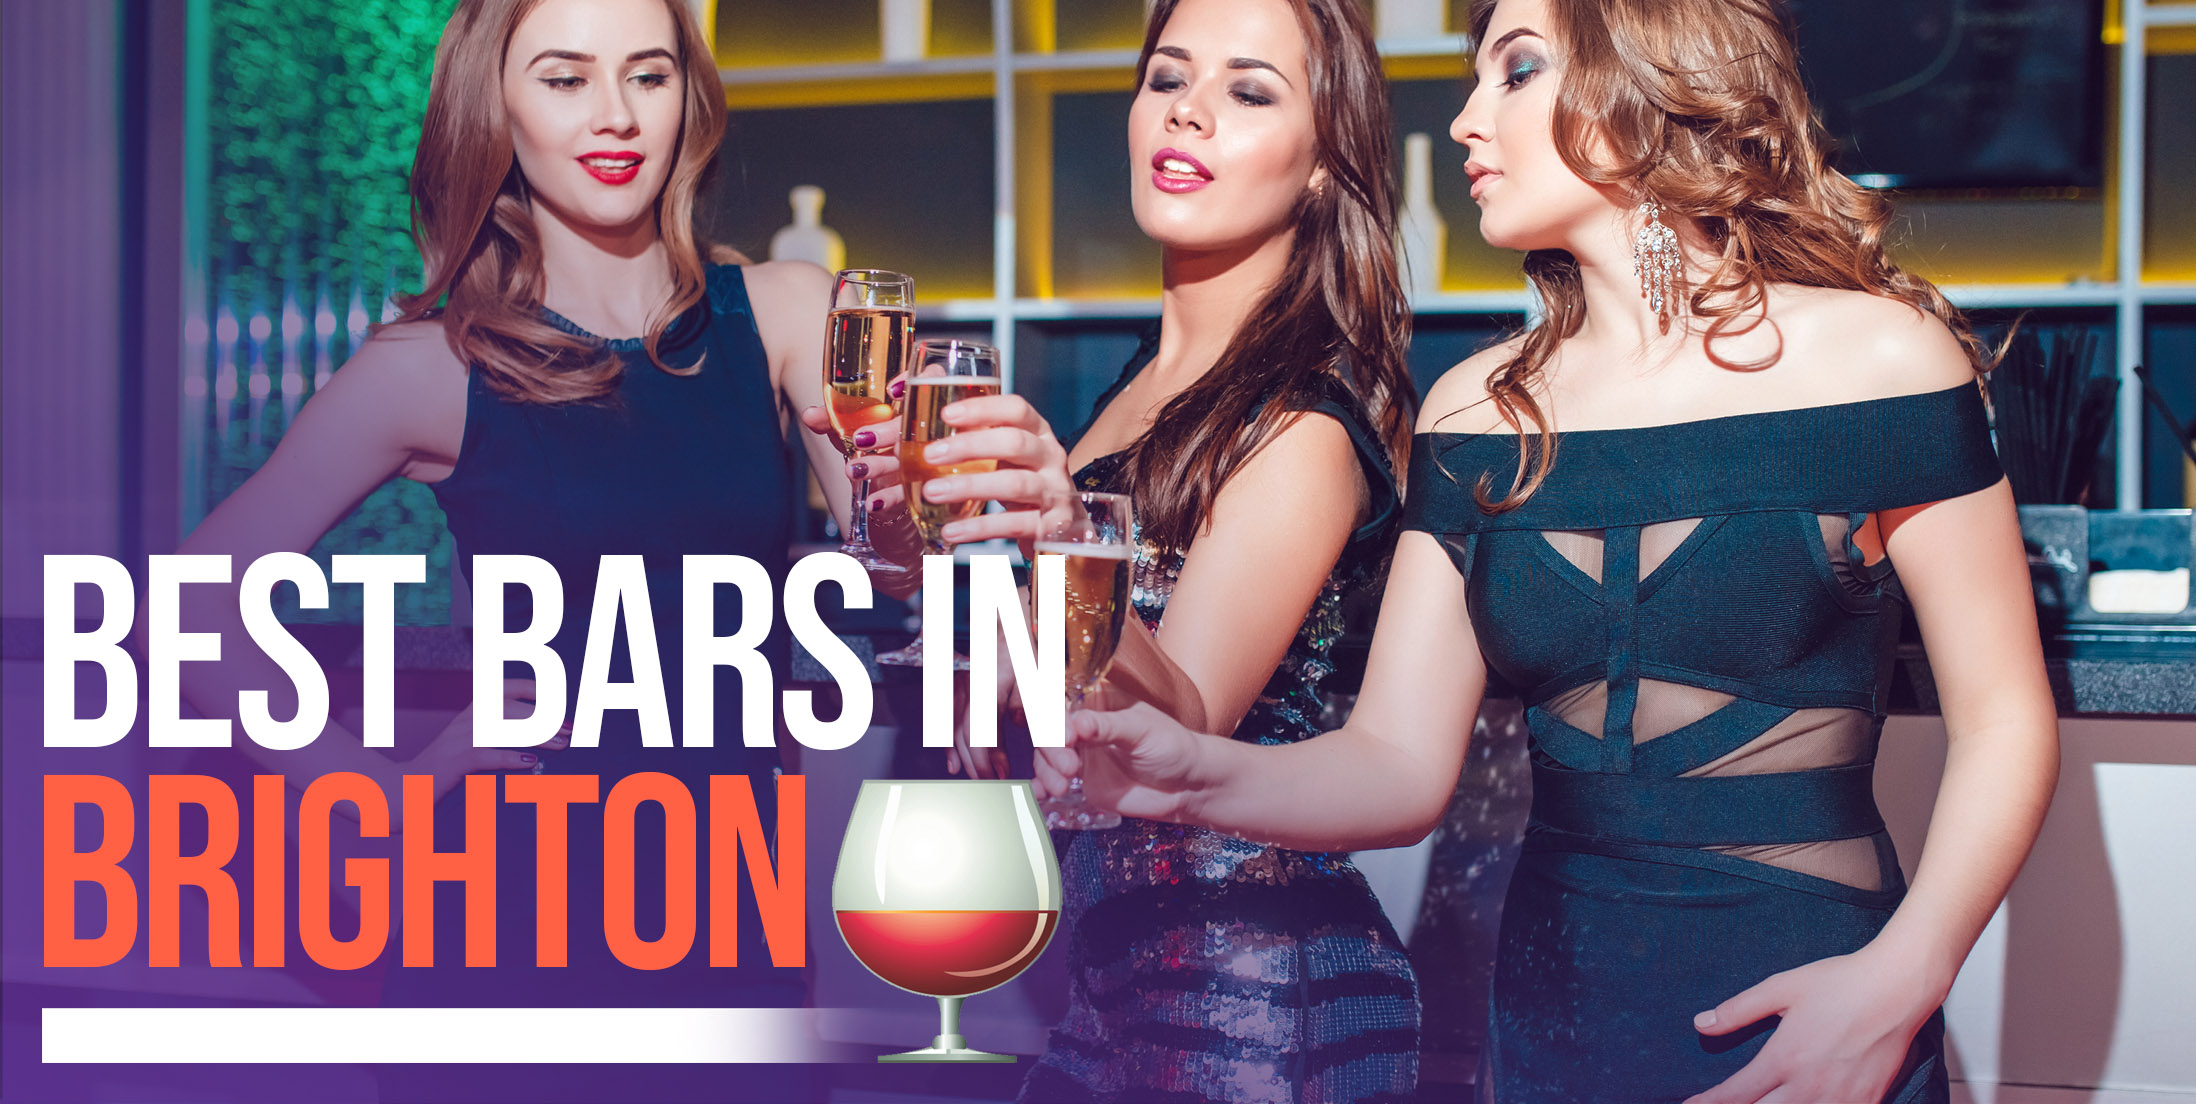 Best Bars in Brighton